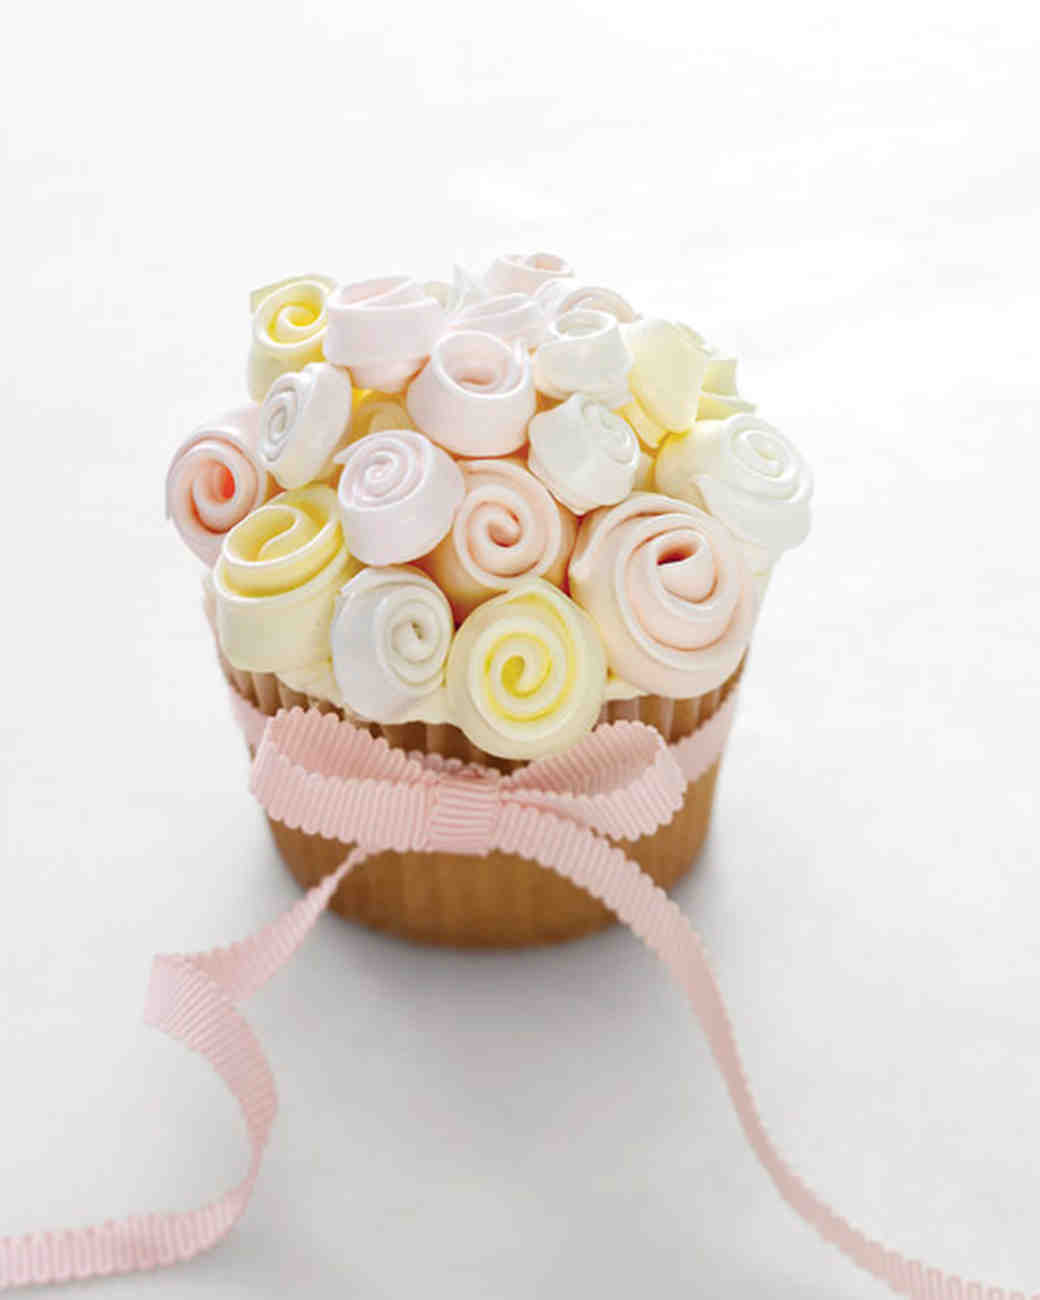 Swiss Meringue Buttercream for Meringue Bouquet Cupcakes Recipe ...